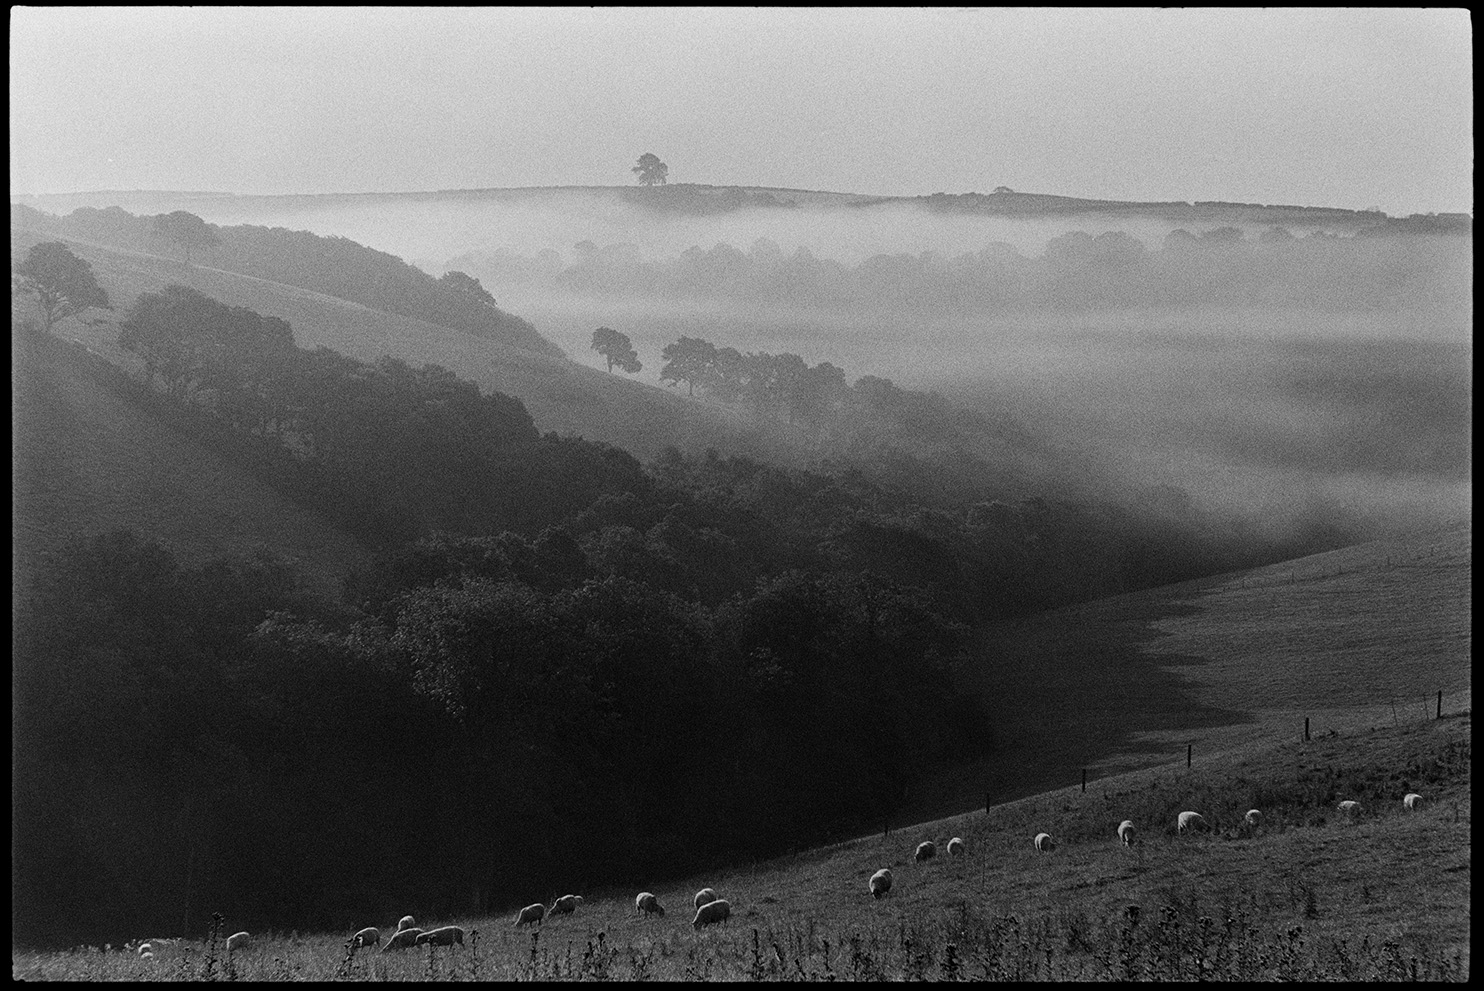 Misty landscape with sheep early morning, Ashreigney, Densham, September, 1981.